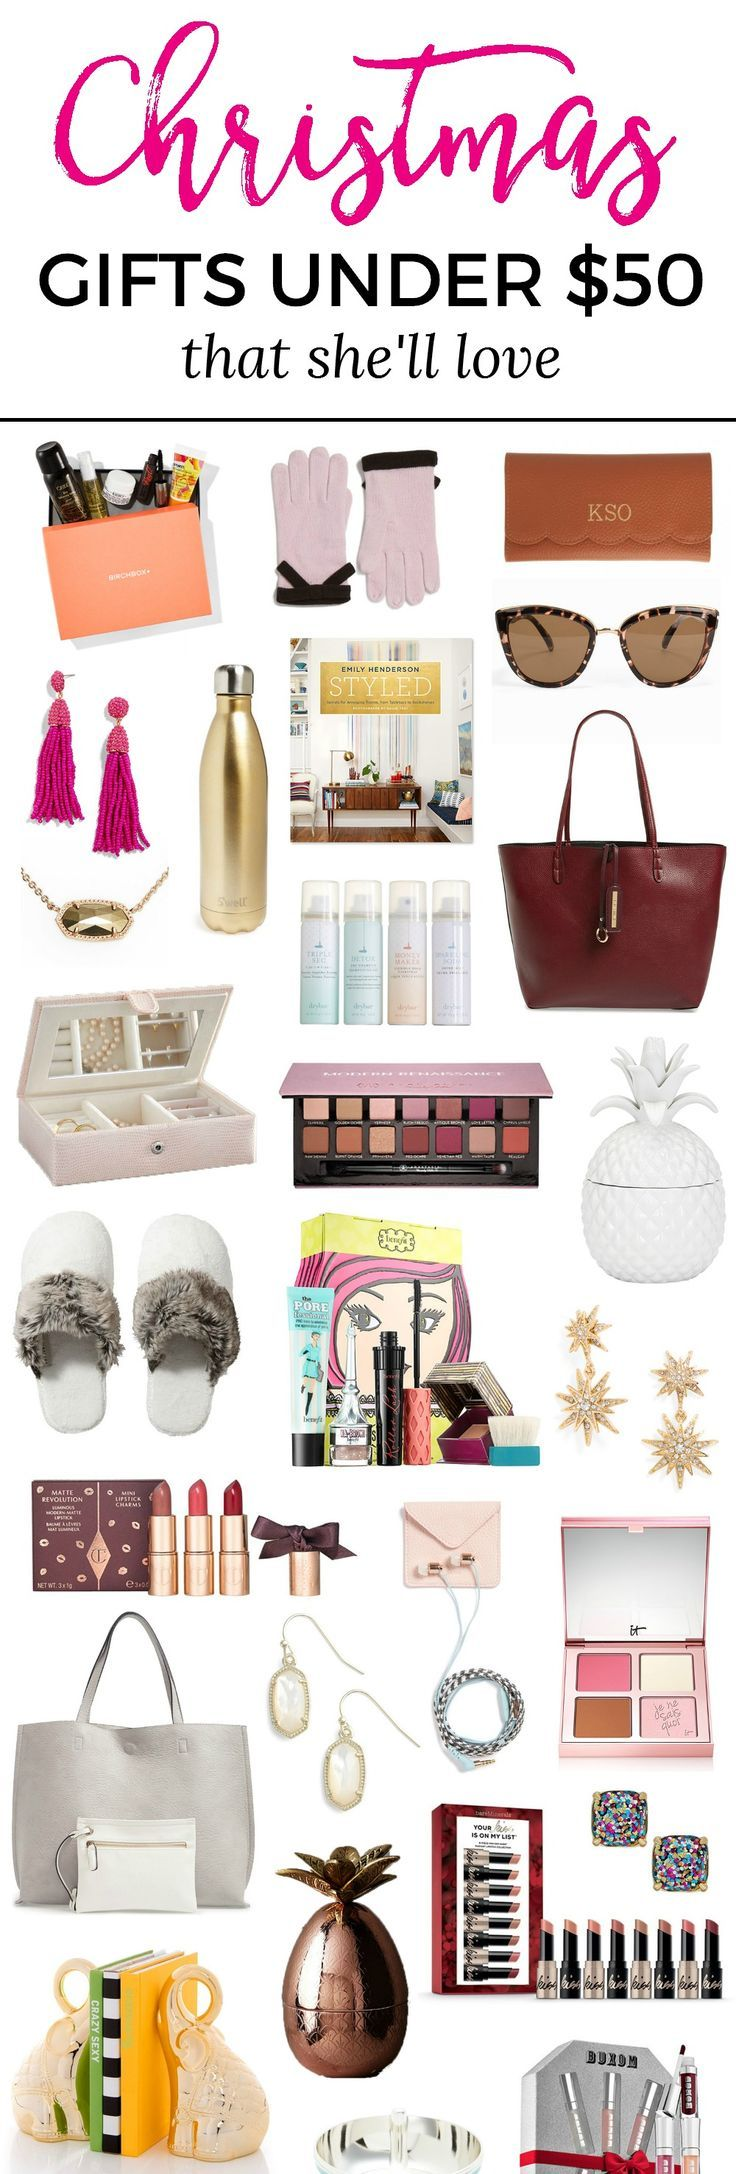 25+ best Gifts for women ideas on Pinterest | Gift ideas for women ...